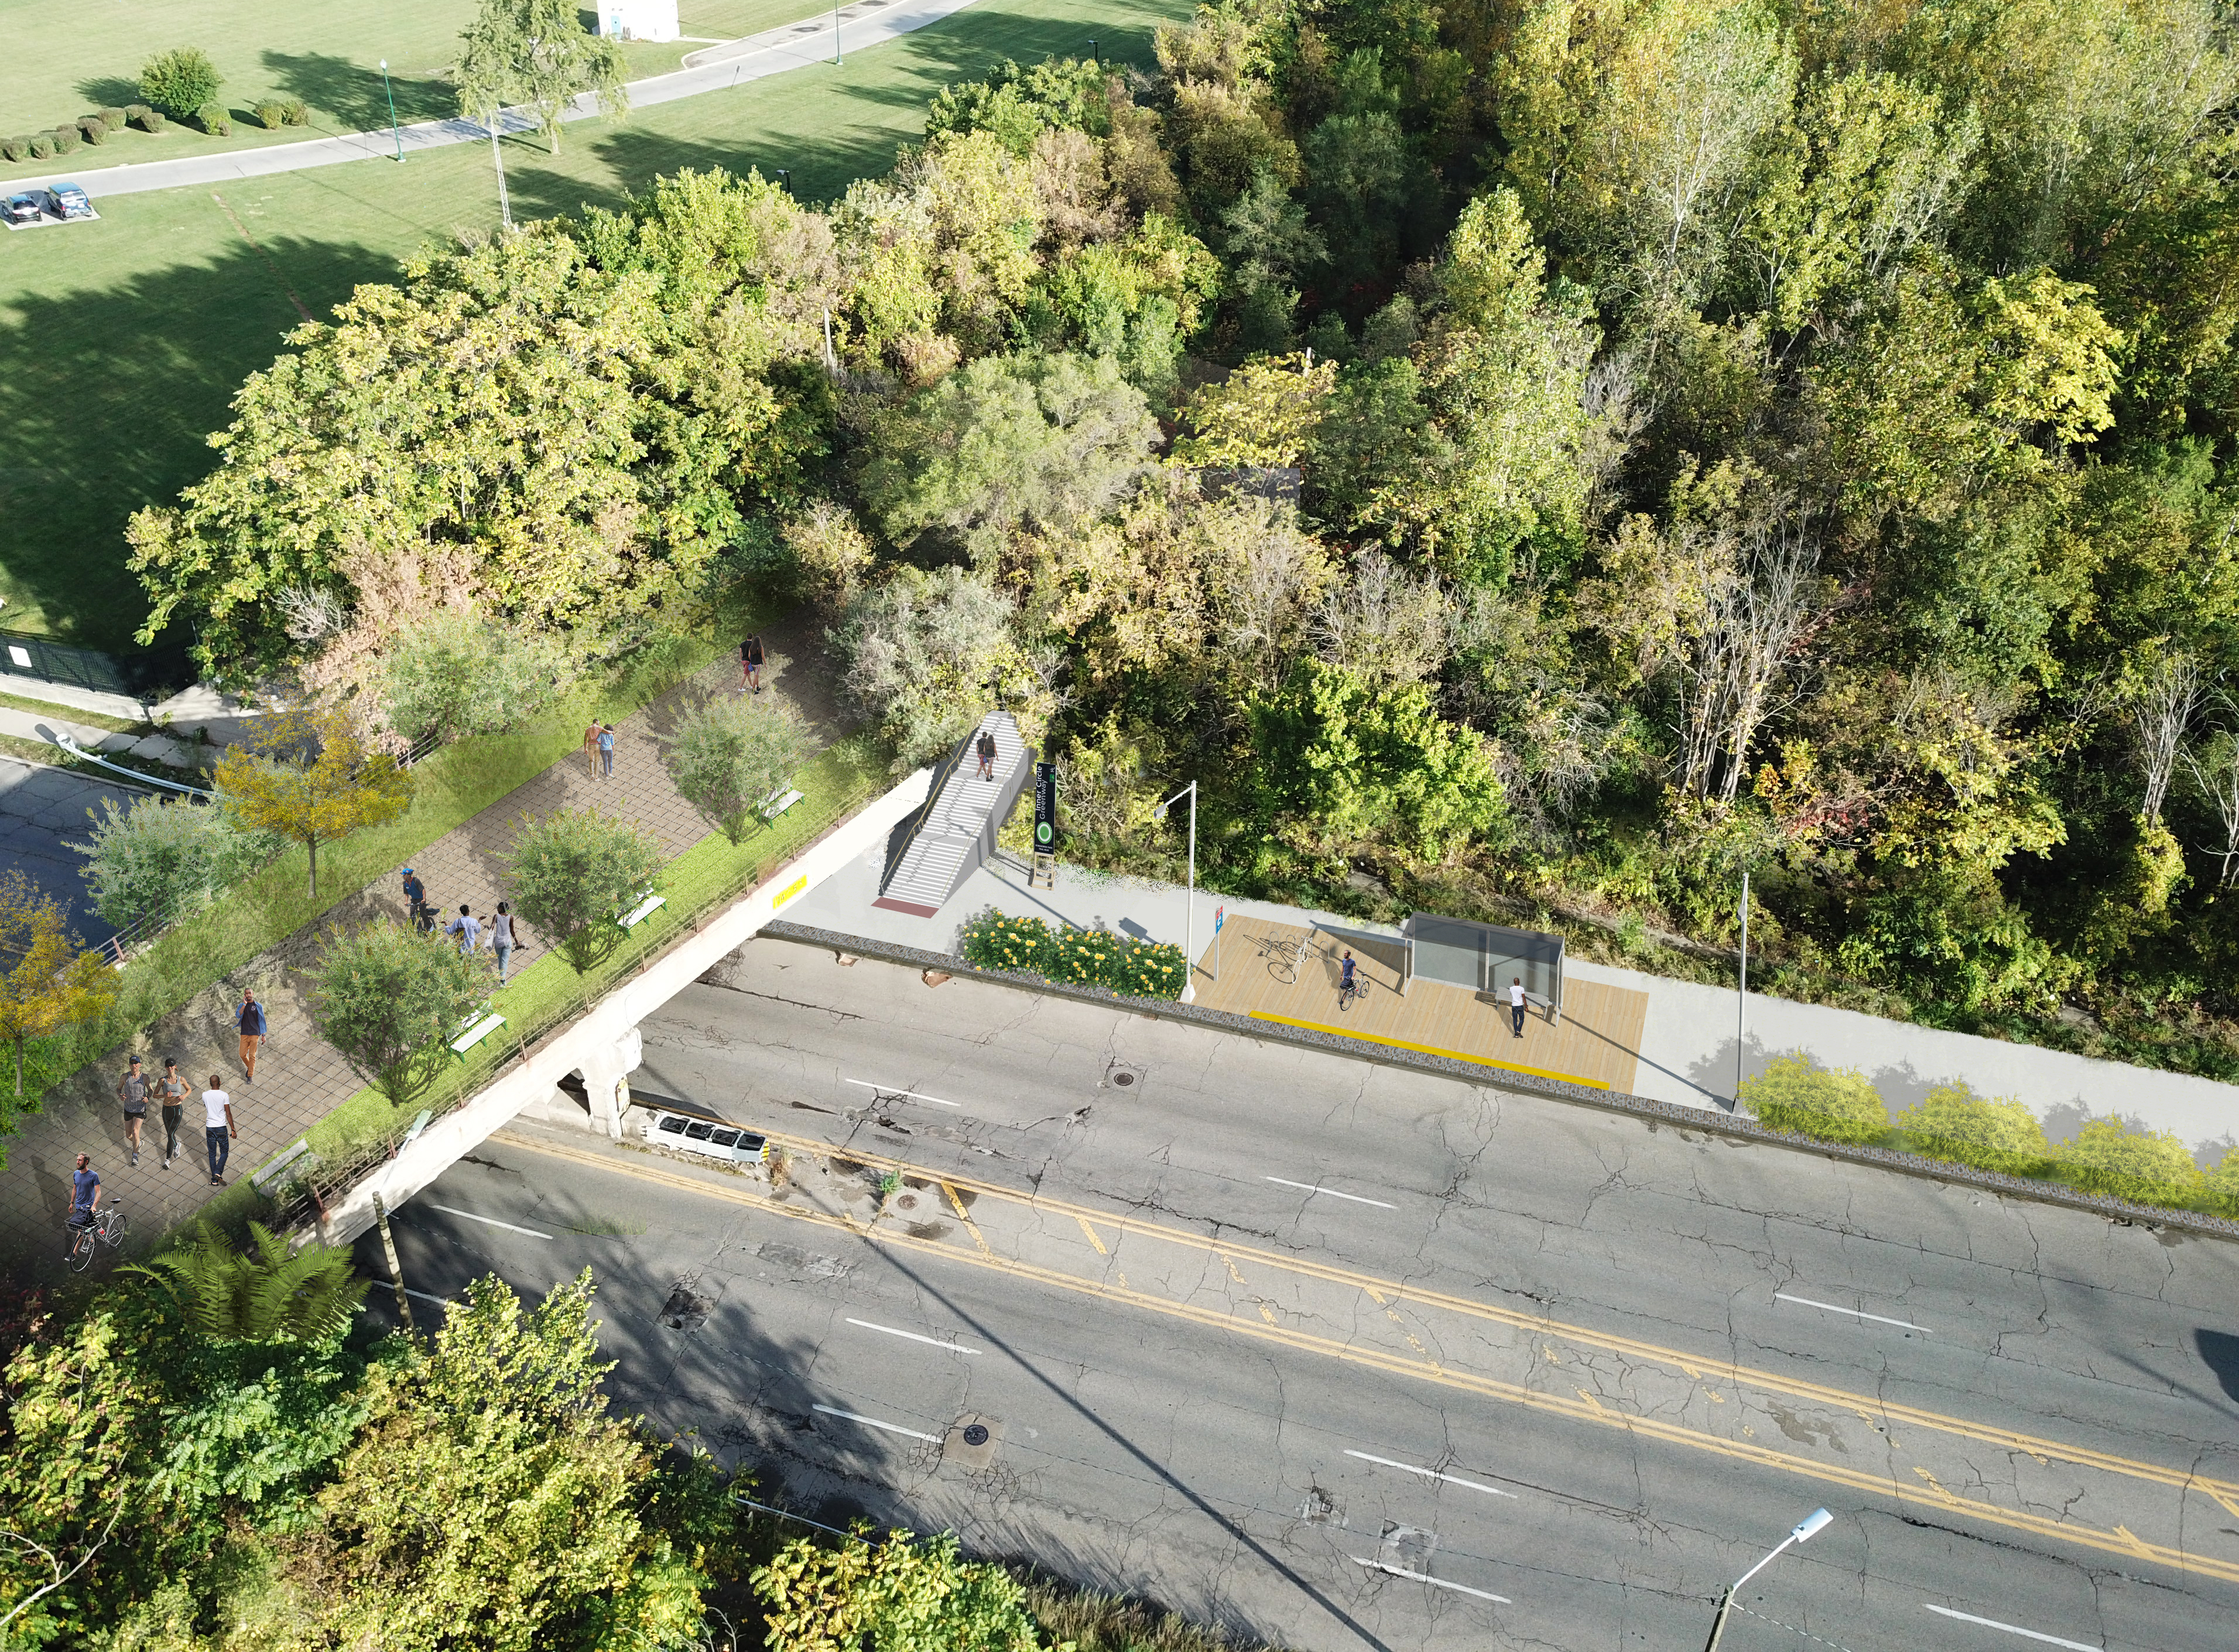 Rendering of a pedestrian pathway lined with trees that crosses over a highway.